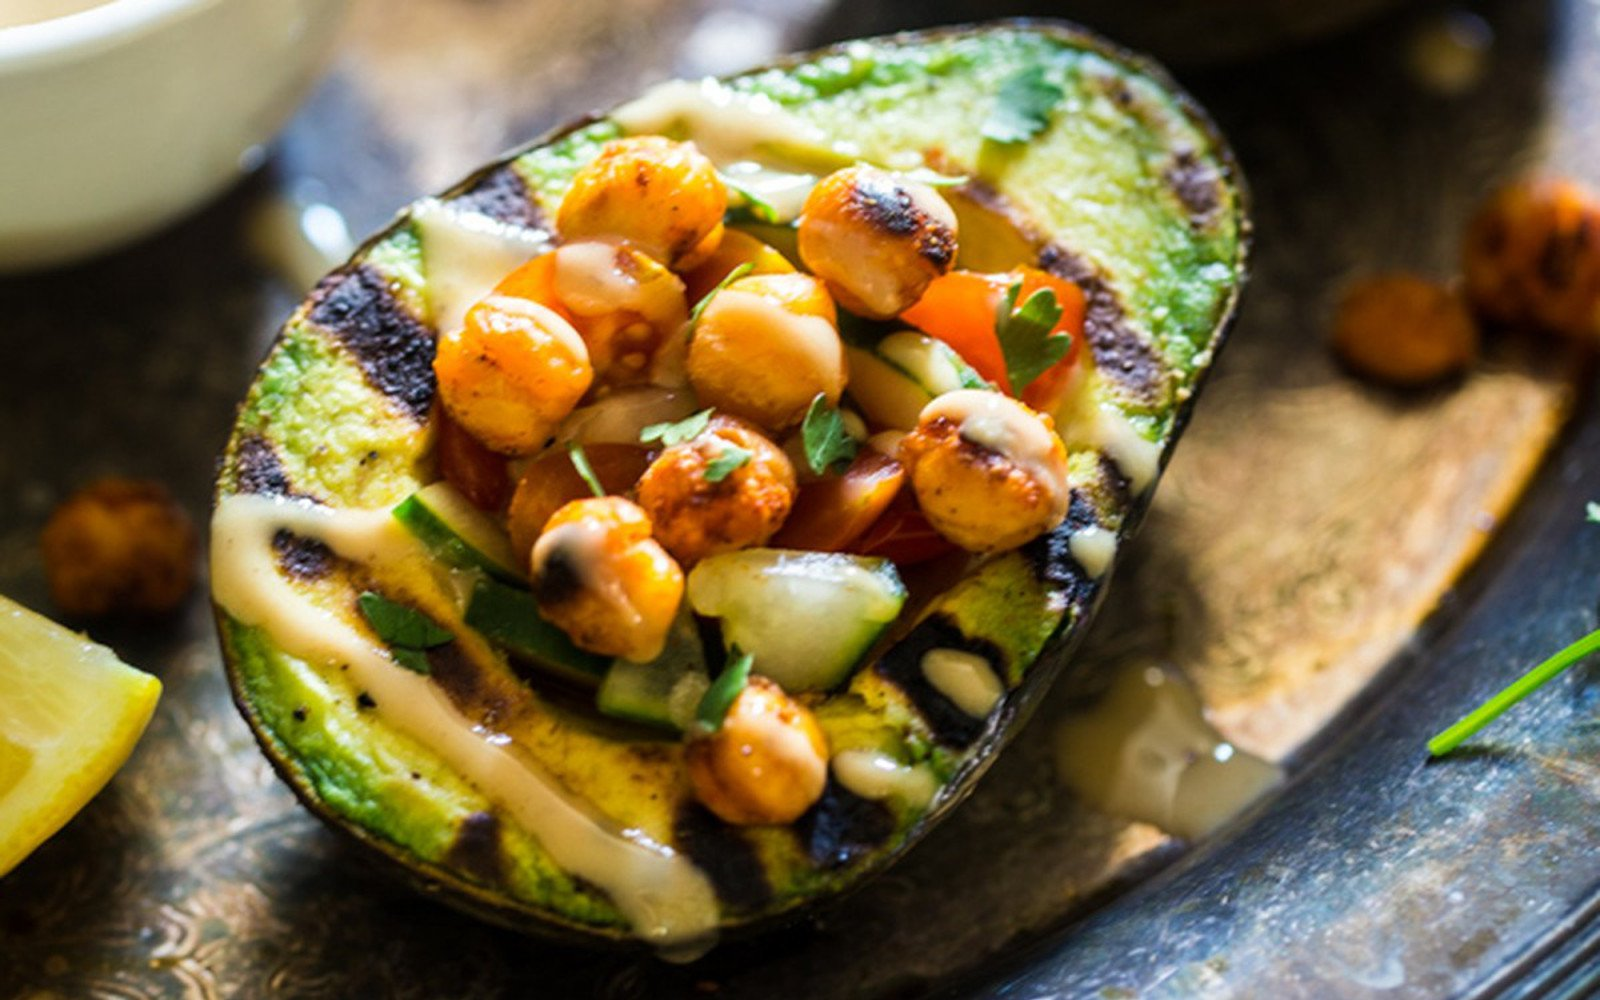 grilled chickpea-stuffed avocado